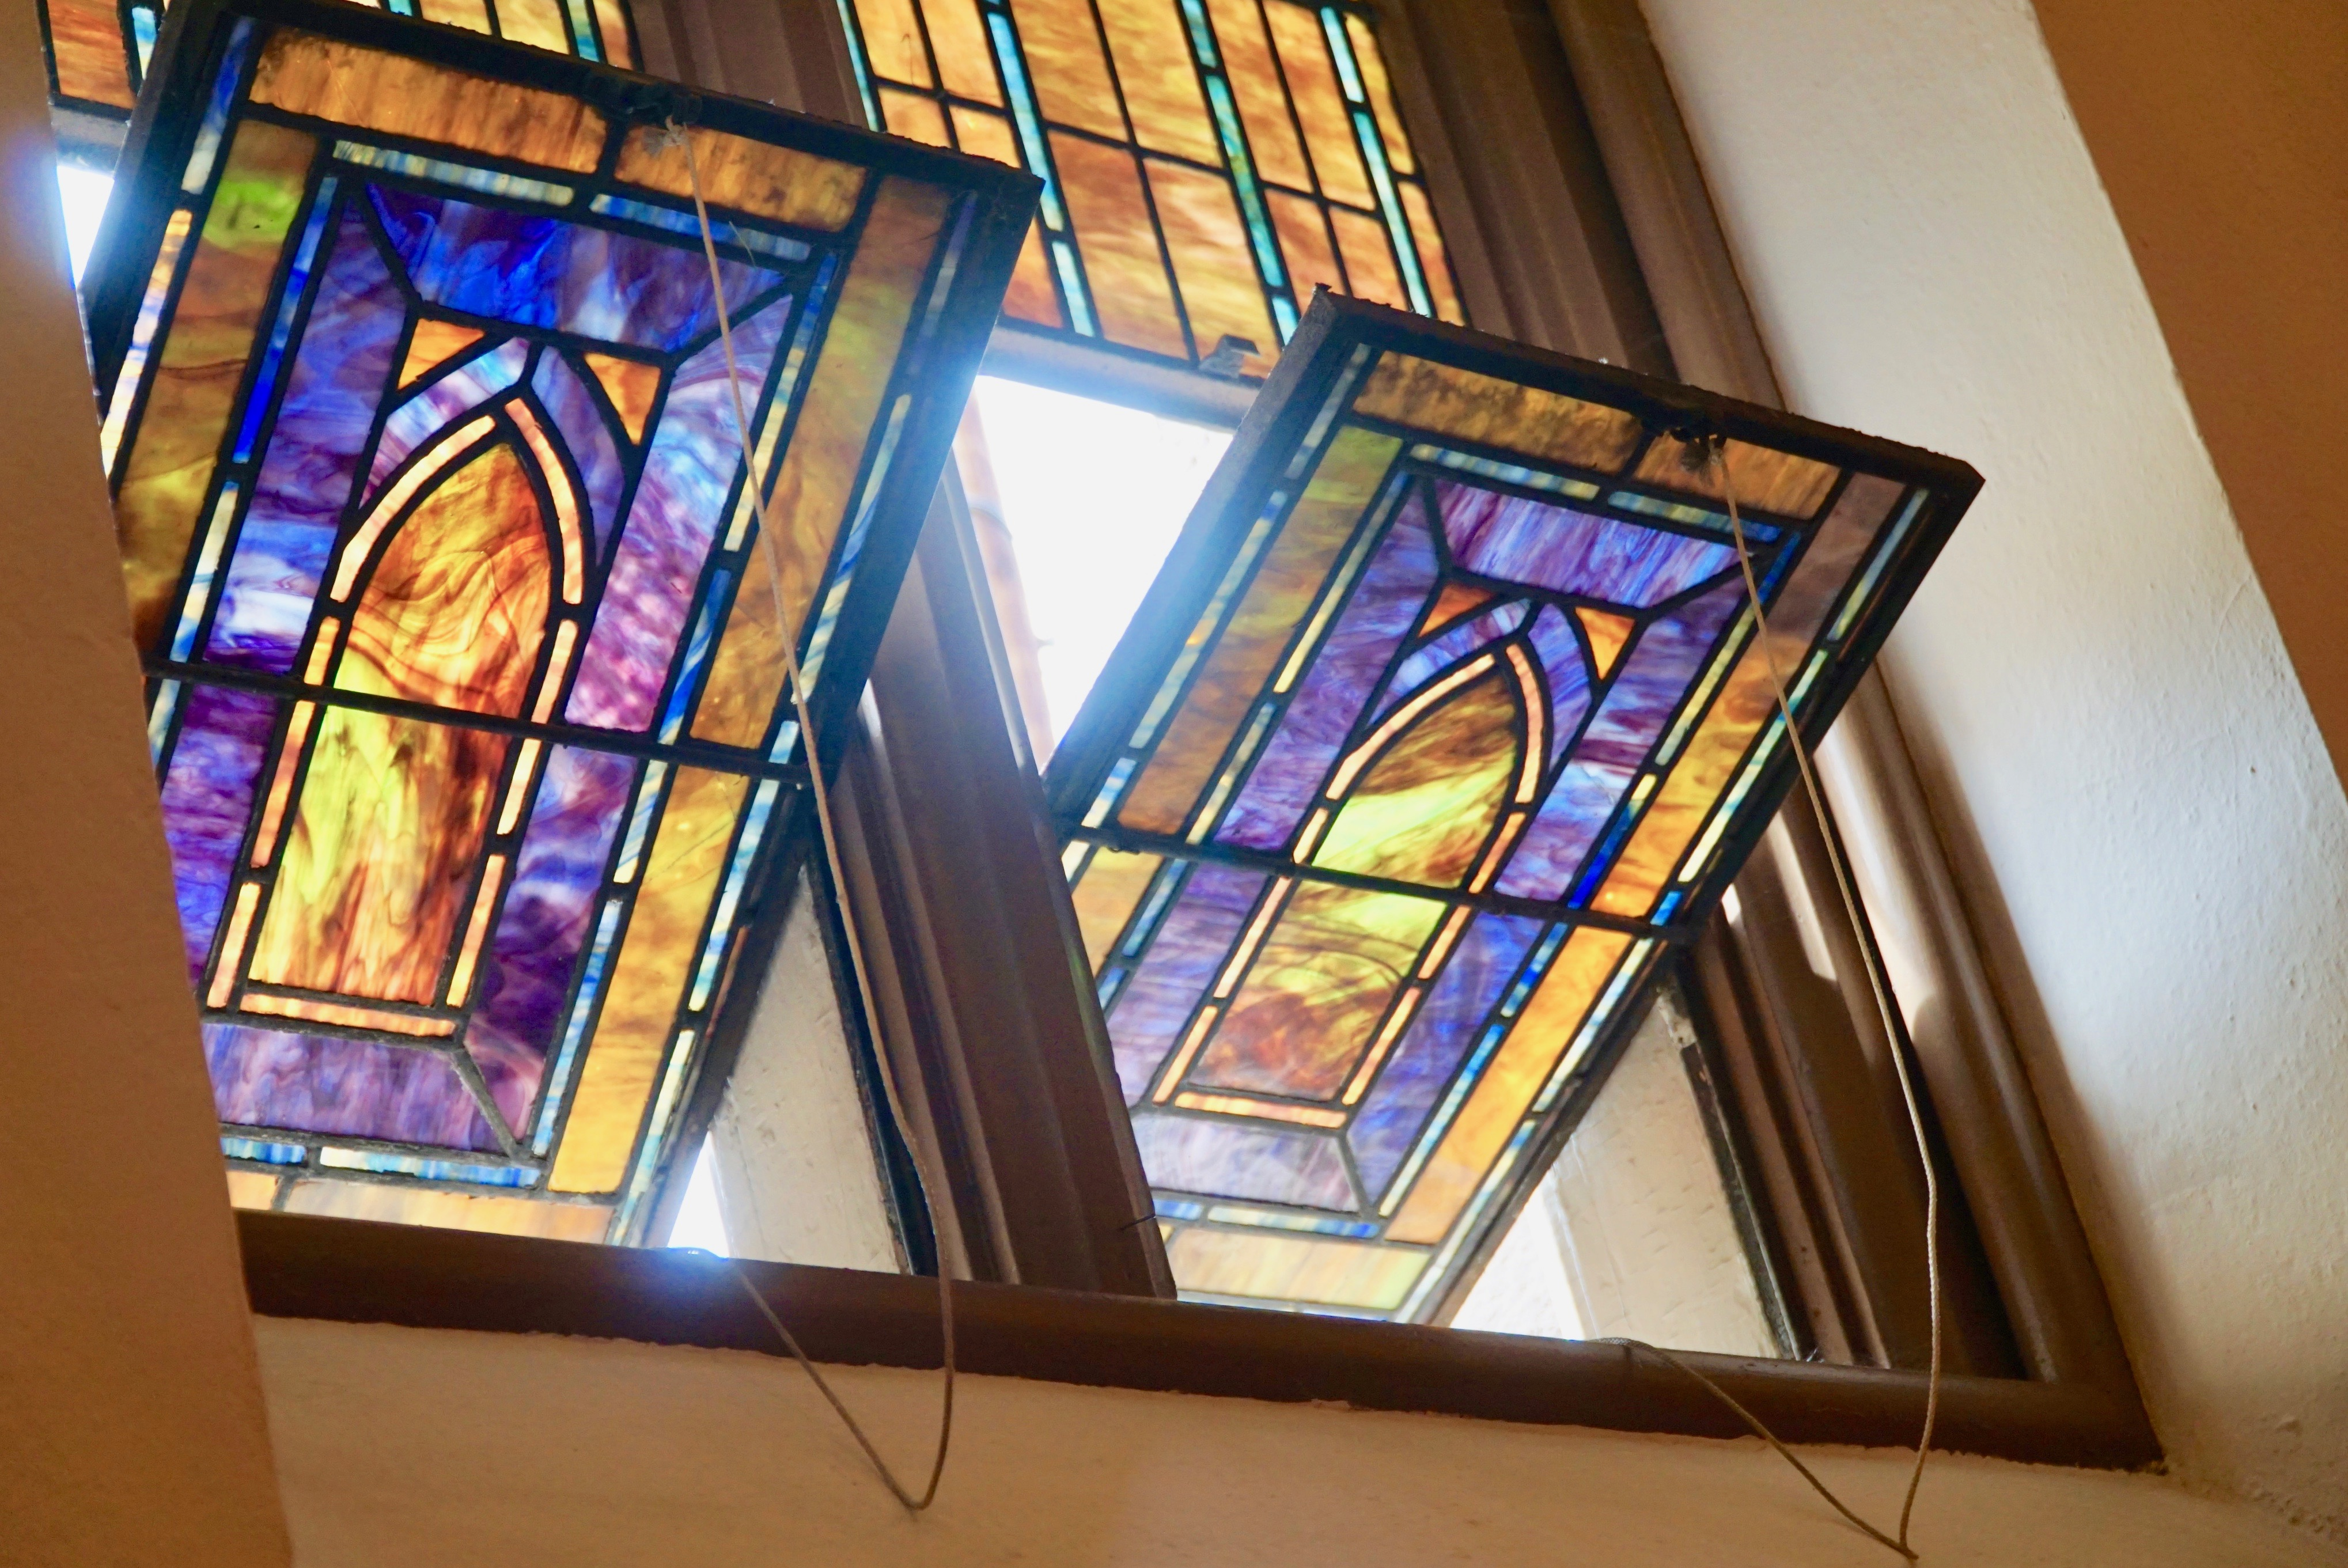 Small Tiffany windows at First Presbyterian Church in Easton, PA